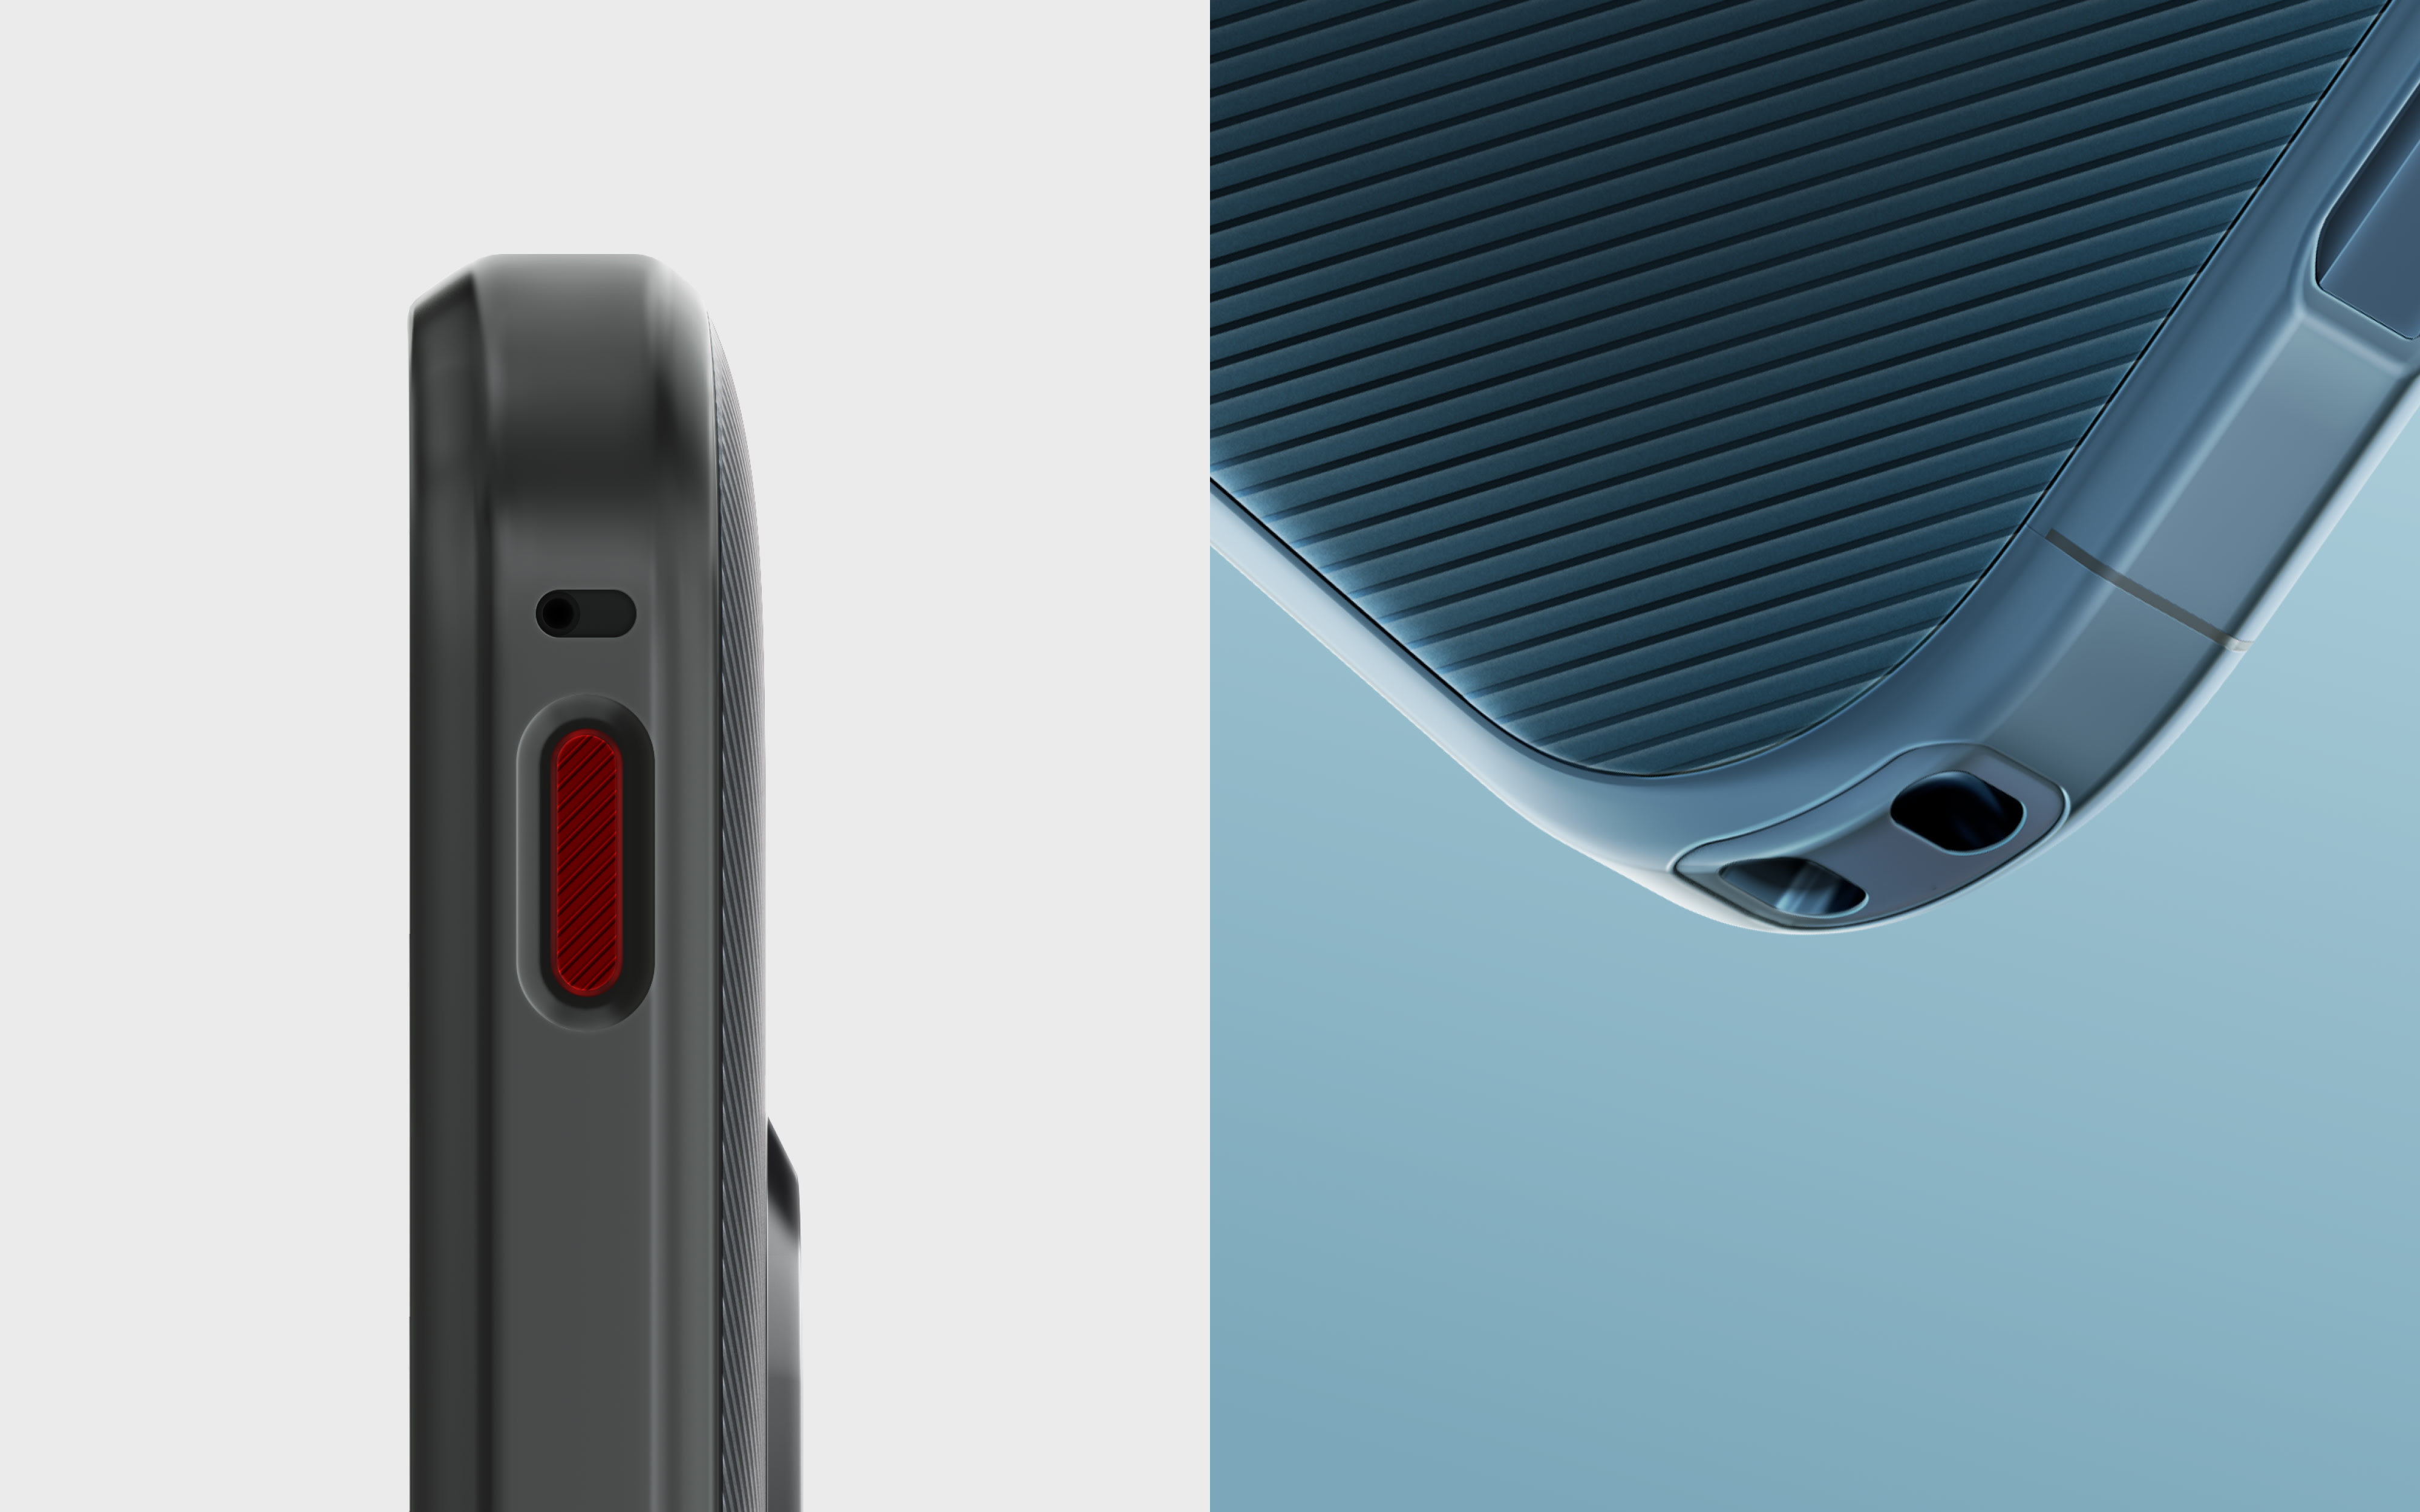 Two Nokia XR20 images side-by-side highlighting the programable button and accessory loop.